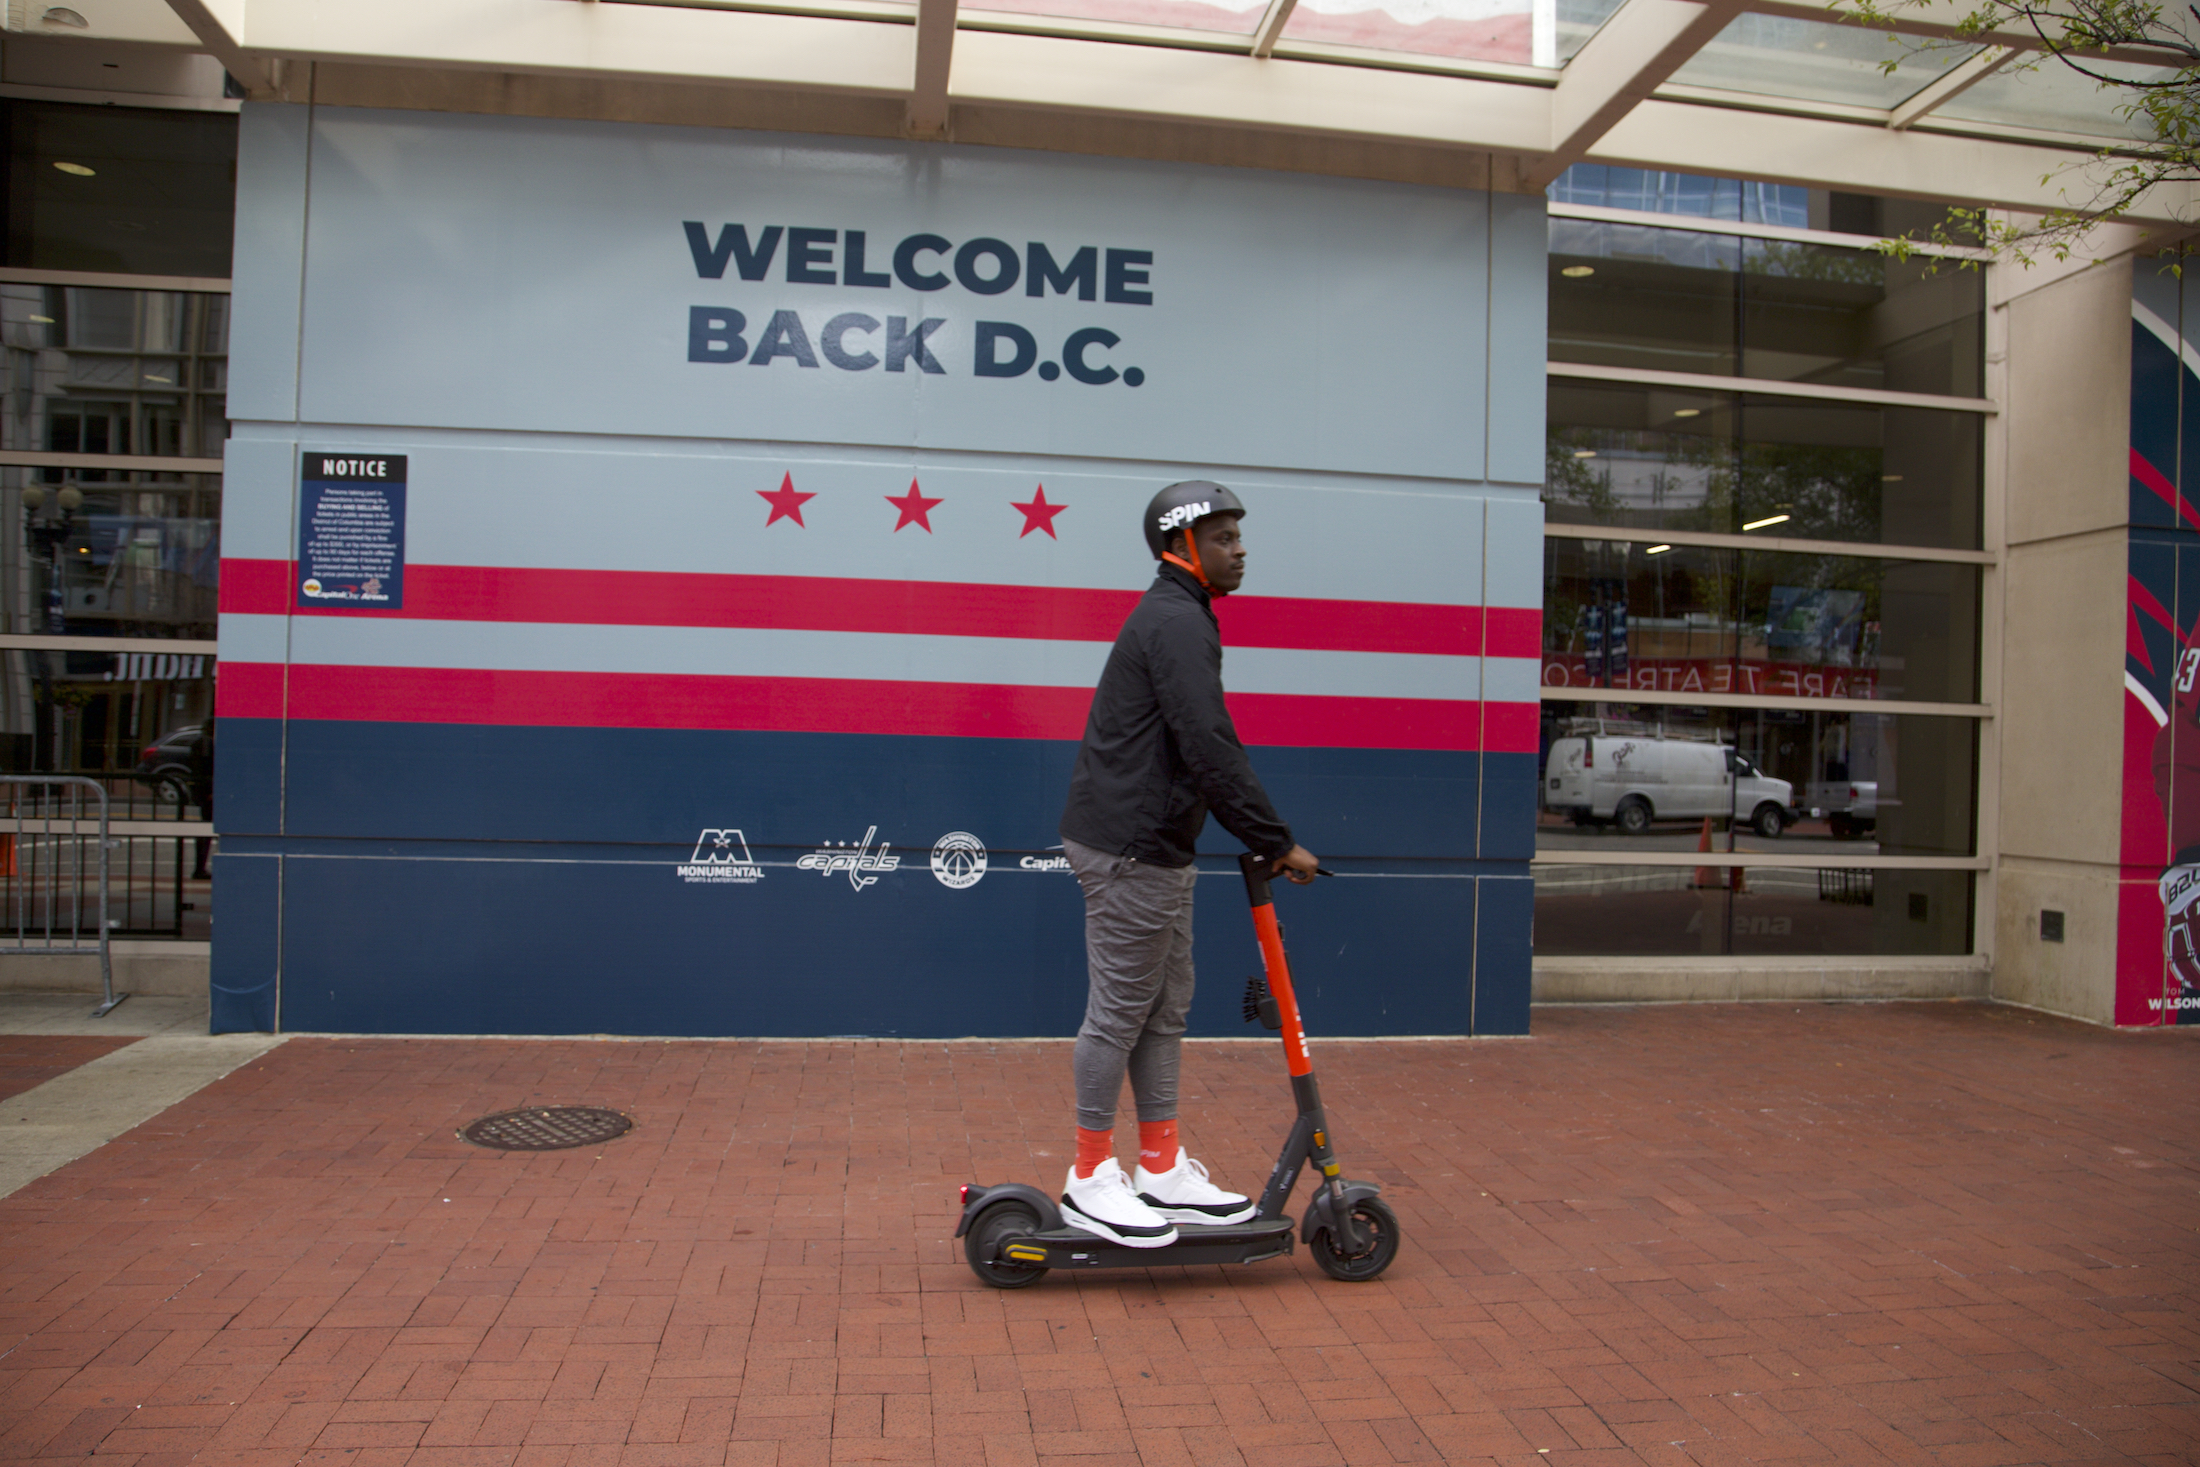 """A man riding a scooter while wearing a helmet in front of a mural that says, """"Welcome Back D.C."""""""